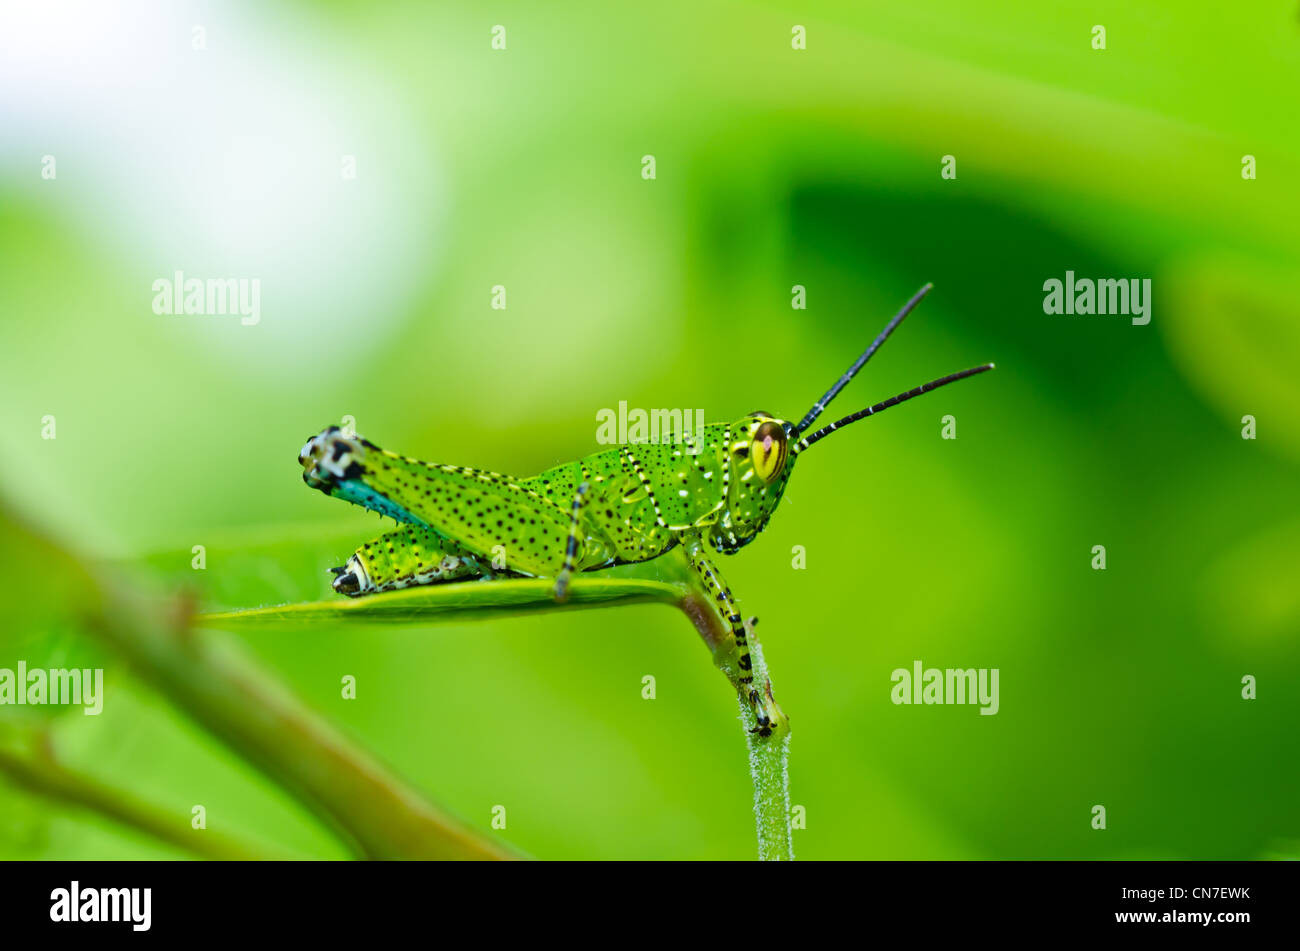 grasshopper in green nature or in the garden - Stock Image